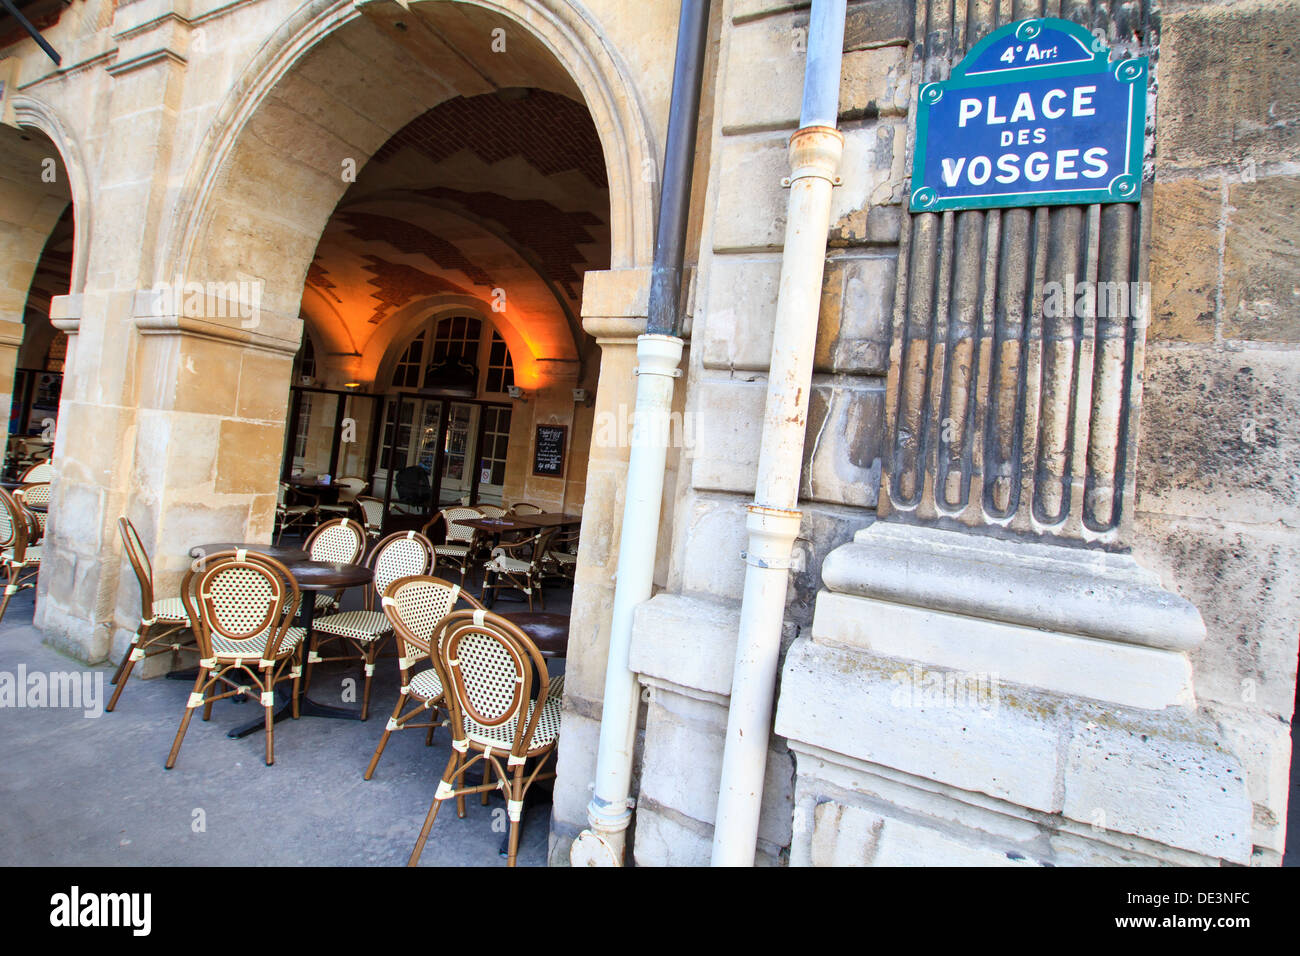 The Marais, Place de Vosges - coffee house sheltered under arches with it's wicker chairs and circular tables, Paris, France - Stock Image